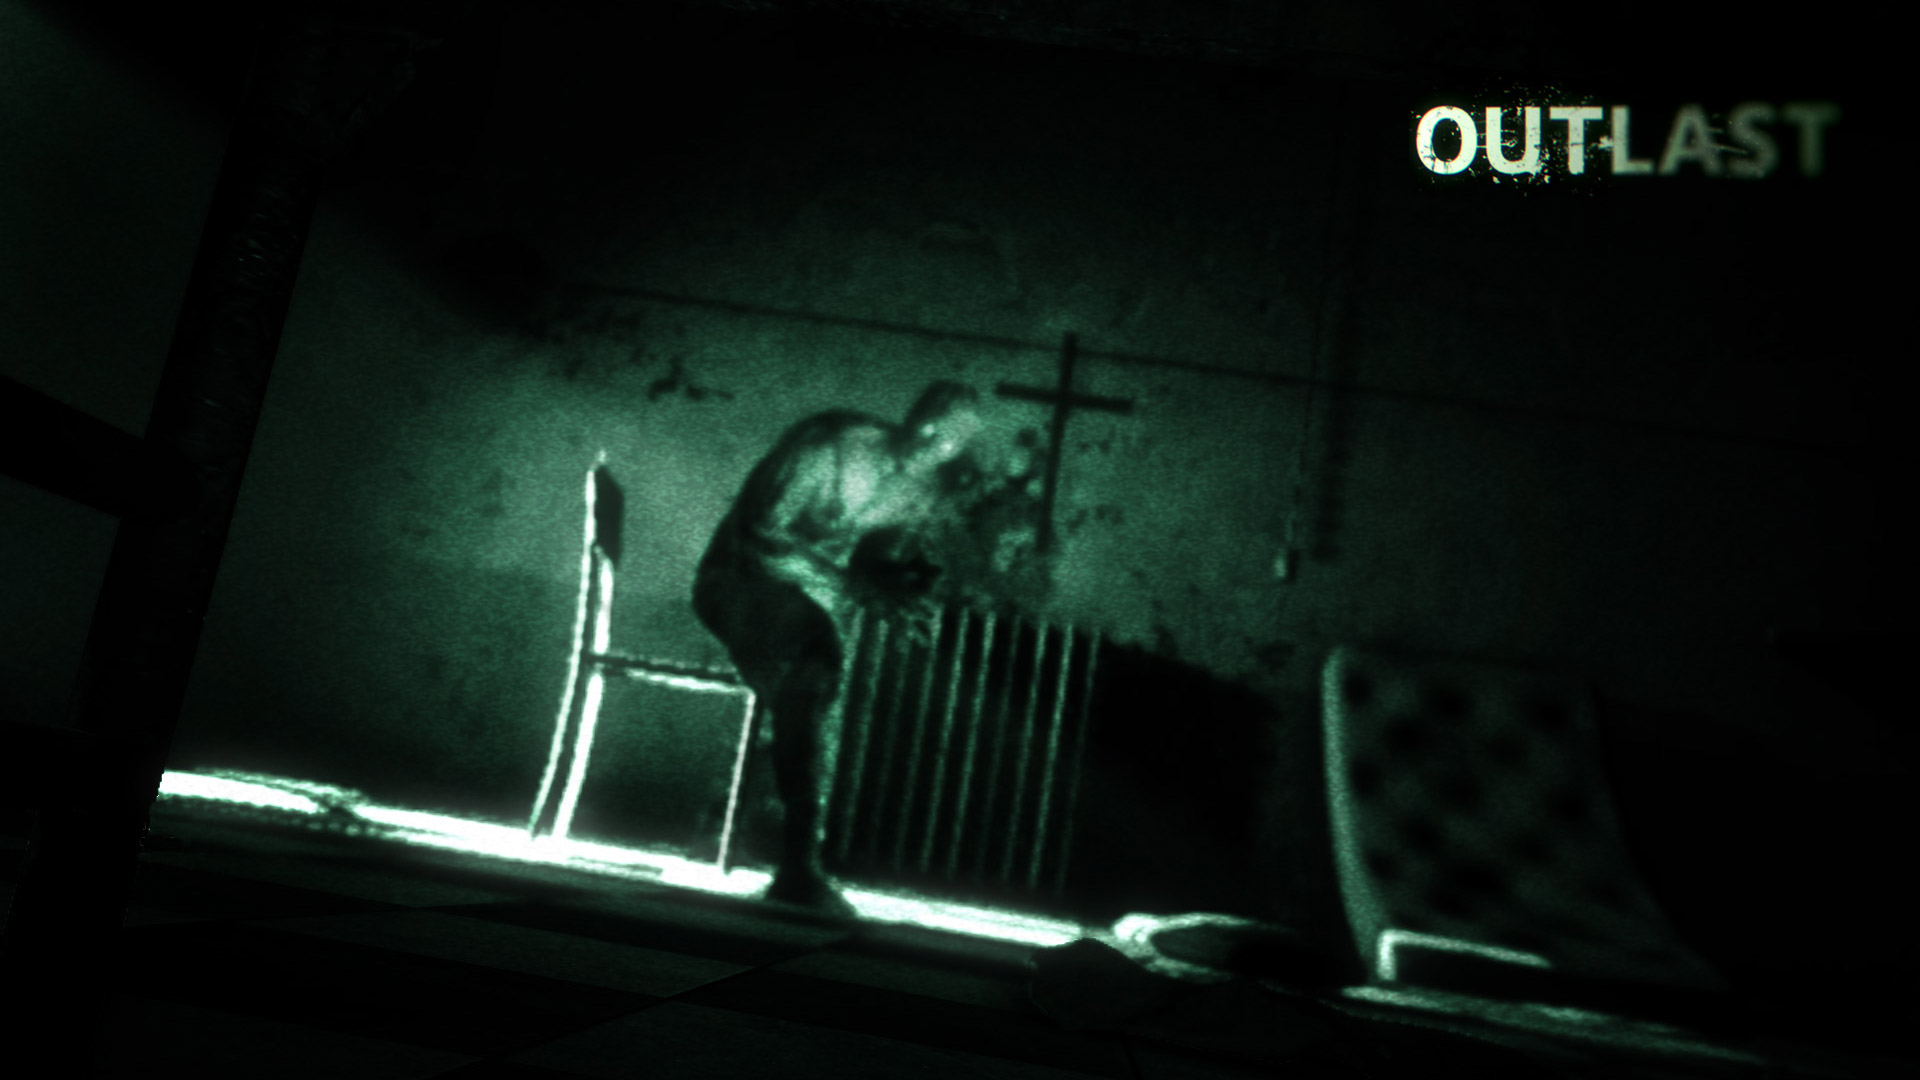 Outlast Wallpaper in 1920x1080